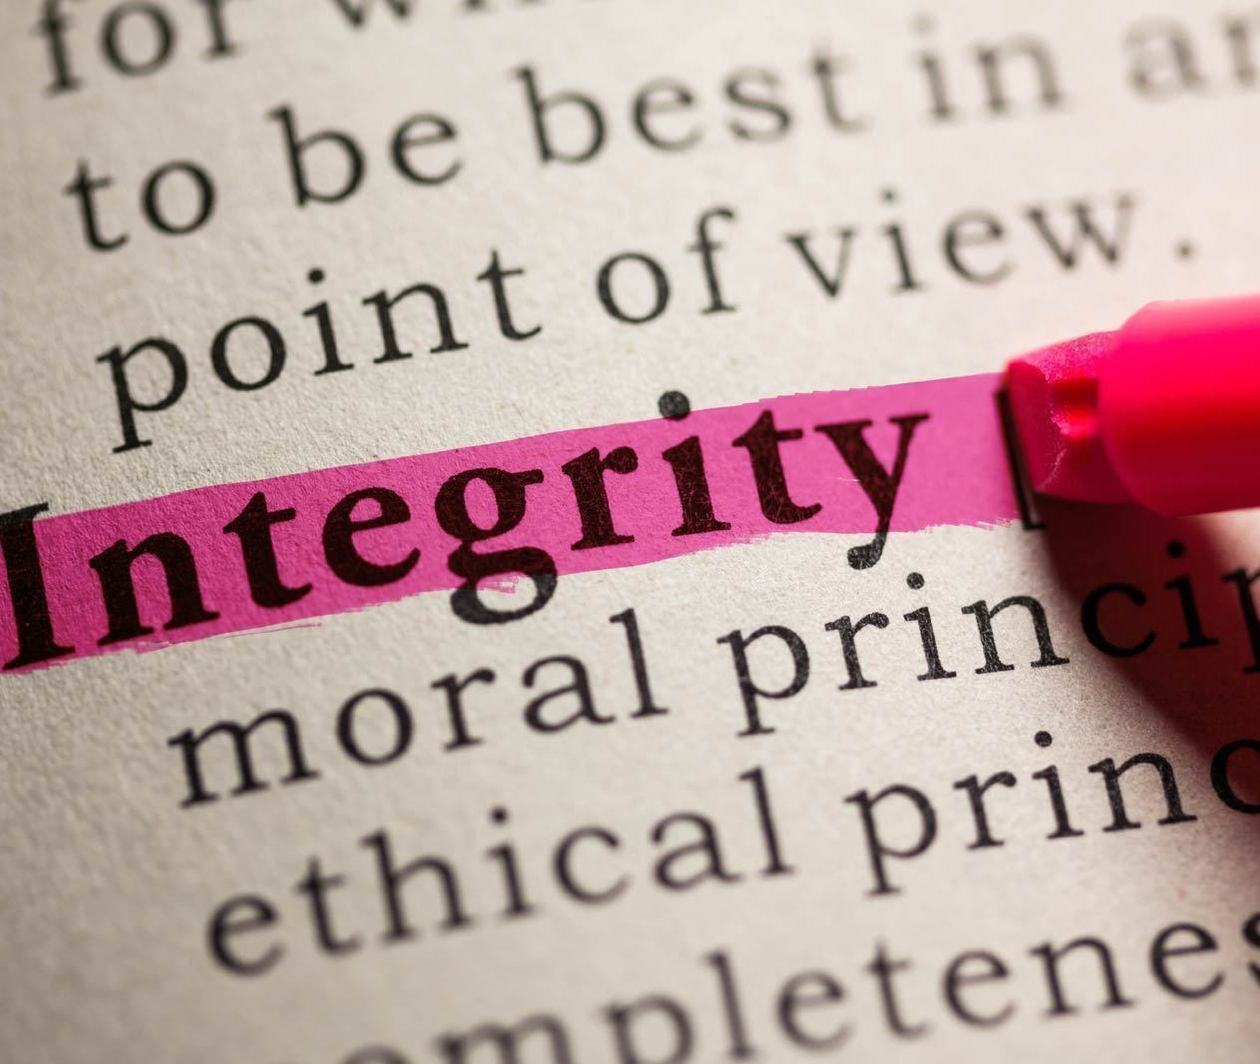 Academic Integrity: Values, Skills, Action